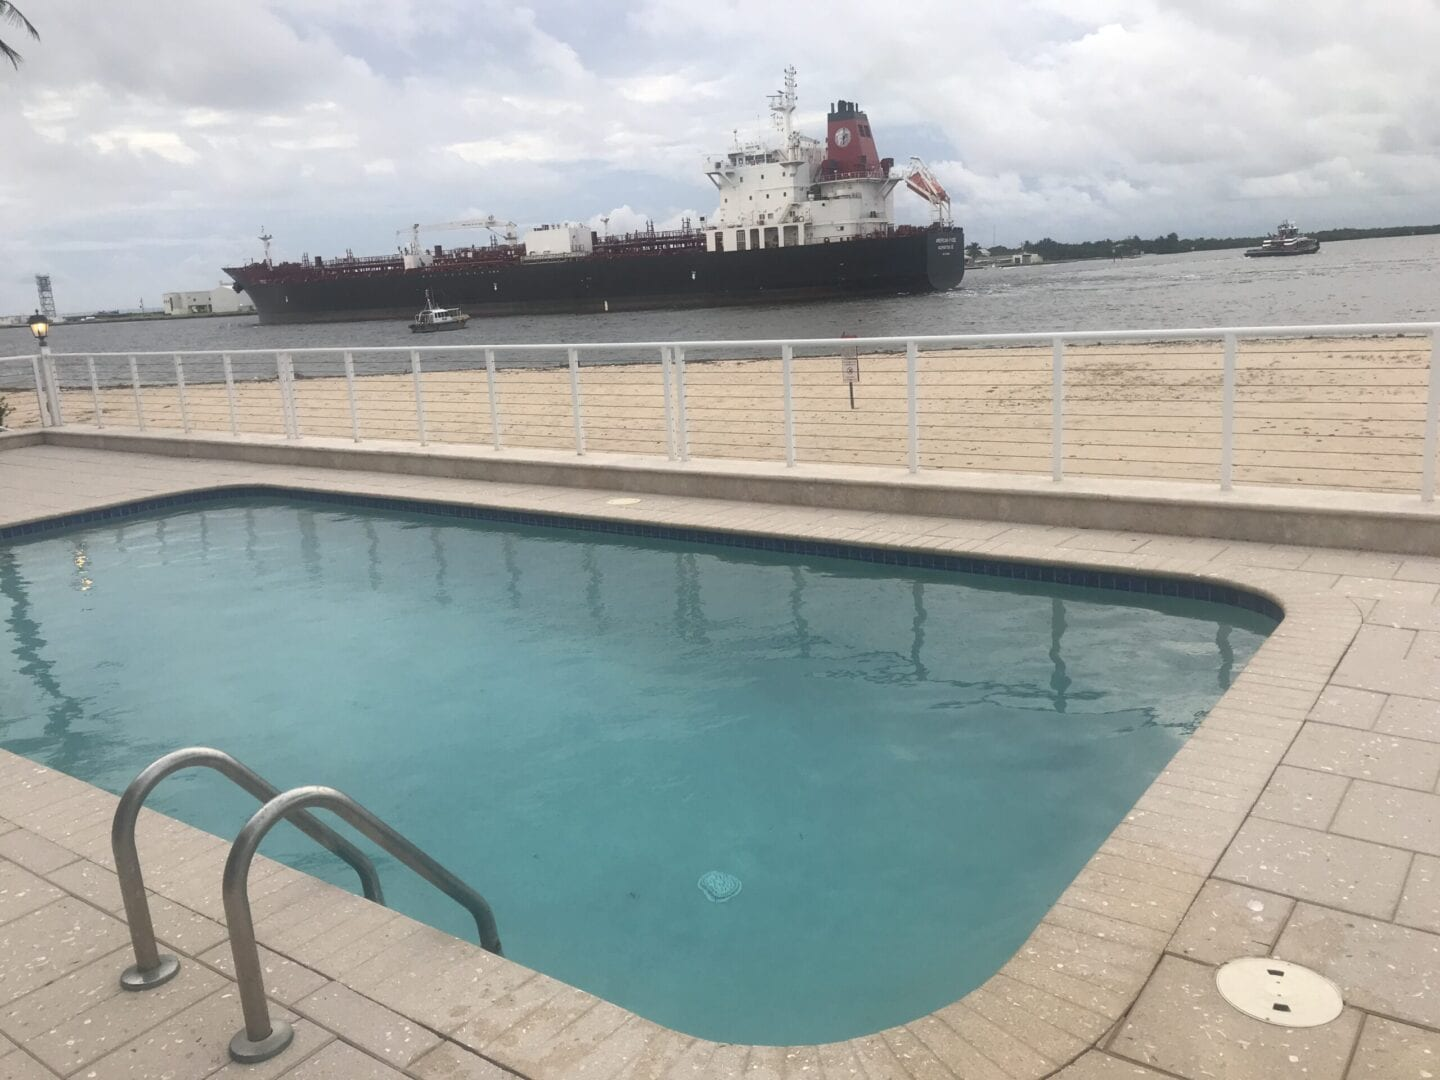 Rounded rectangle pool near the ocean with a ship passing by